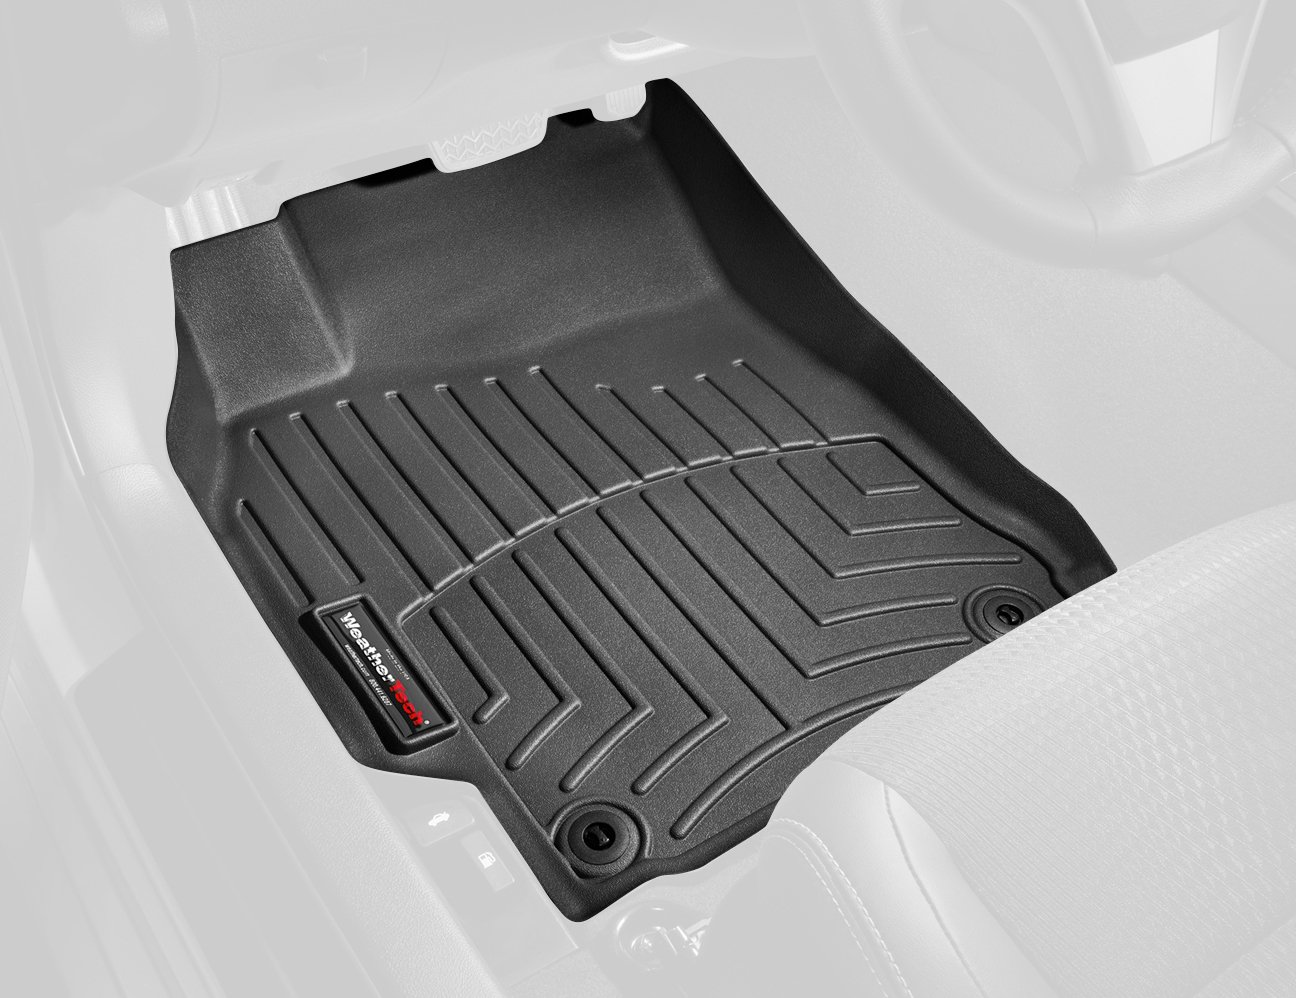 How to unlock weathertech floor mats - Amazon Com Weathertech Custom Fit Front Floorliner For Jeep Grand Cherokee Black Automotive